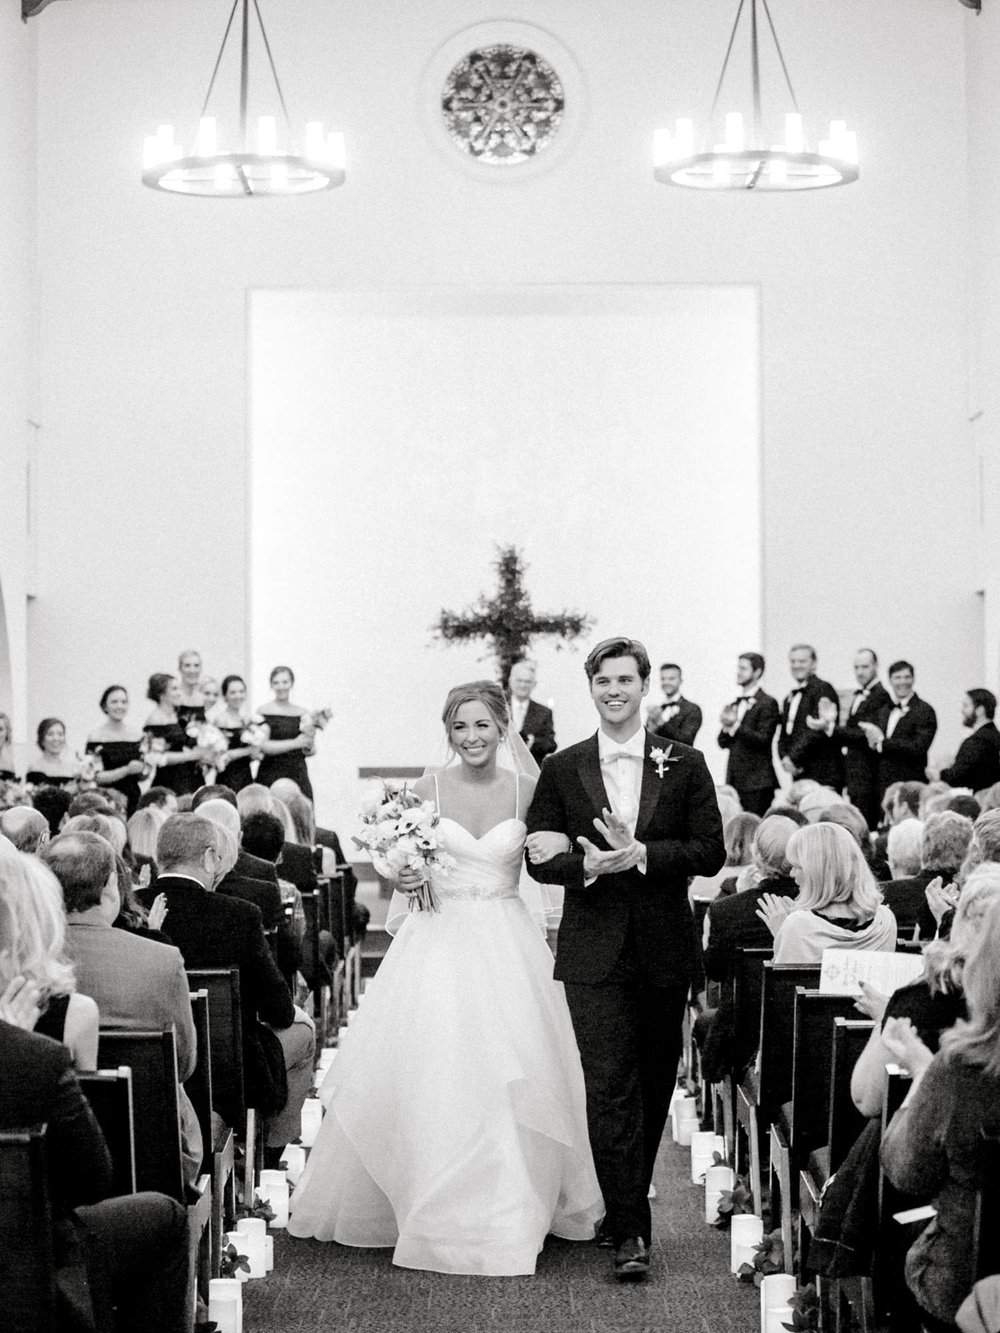 MARLEE+LLOYD+MORGAN+ALLEEJ+TEXAS+TECH+MERKET+ALUMNI+WEDDINGS+LUBBOCK+WEST+TABLE+CLASSIC+SPAIN_0180.jpg